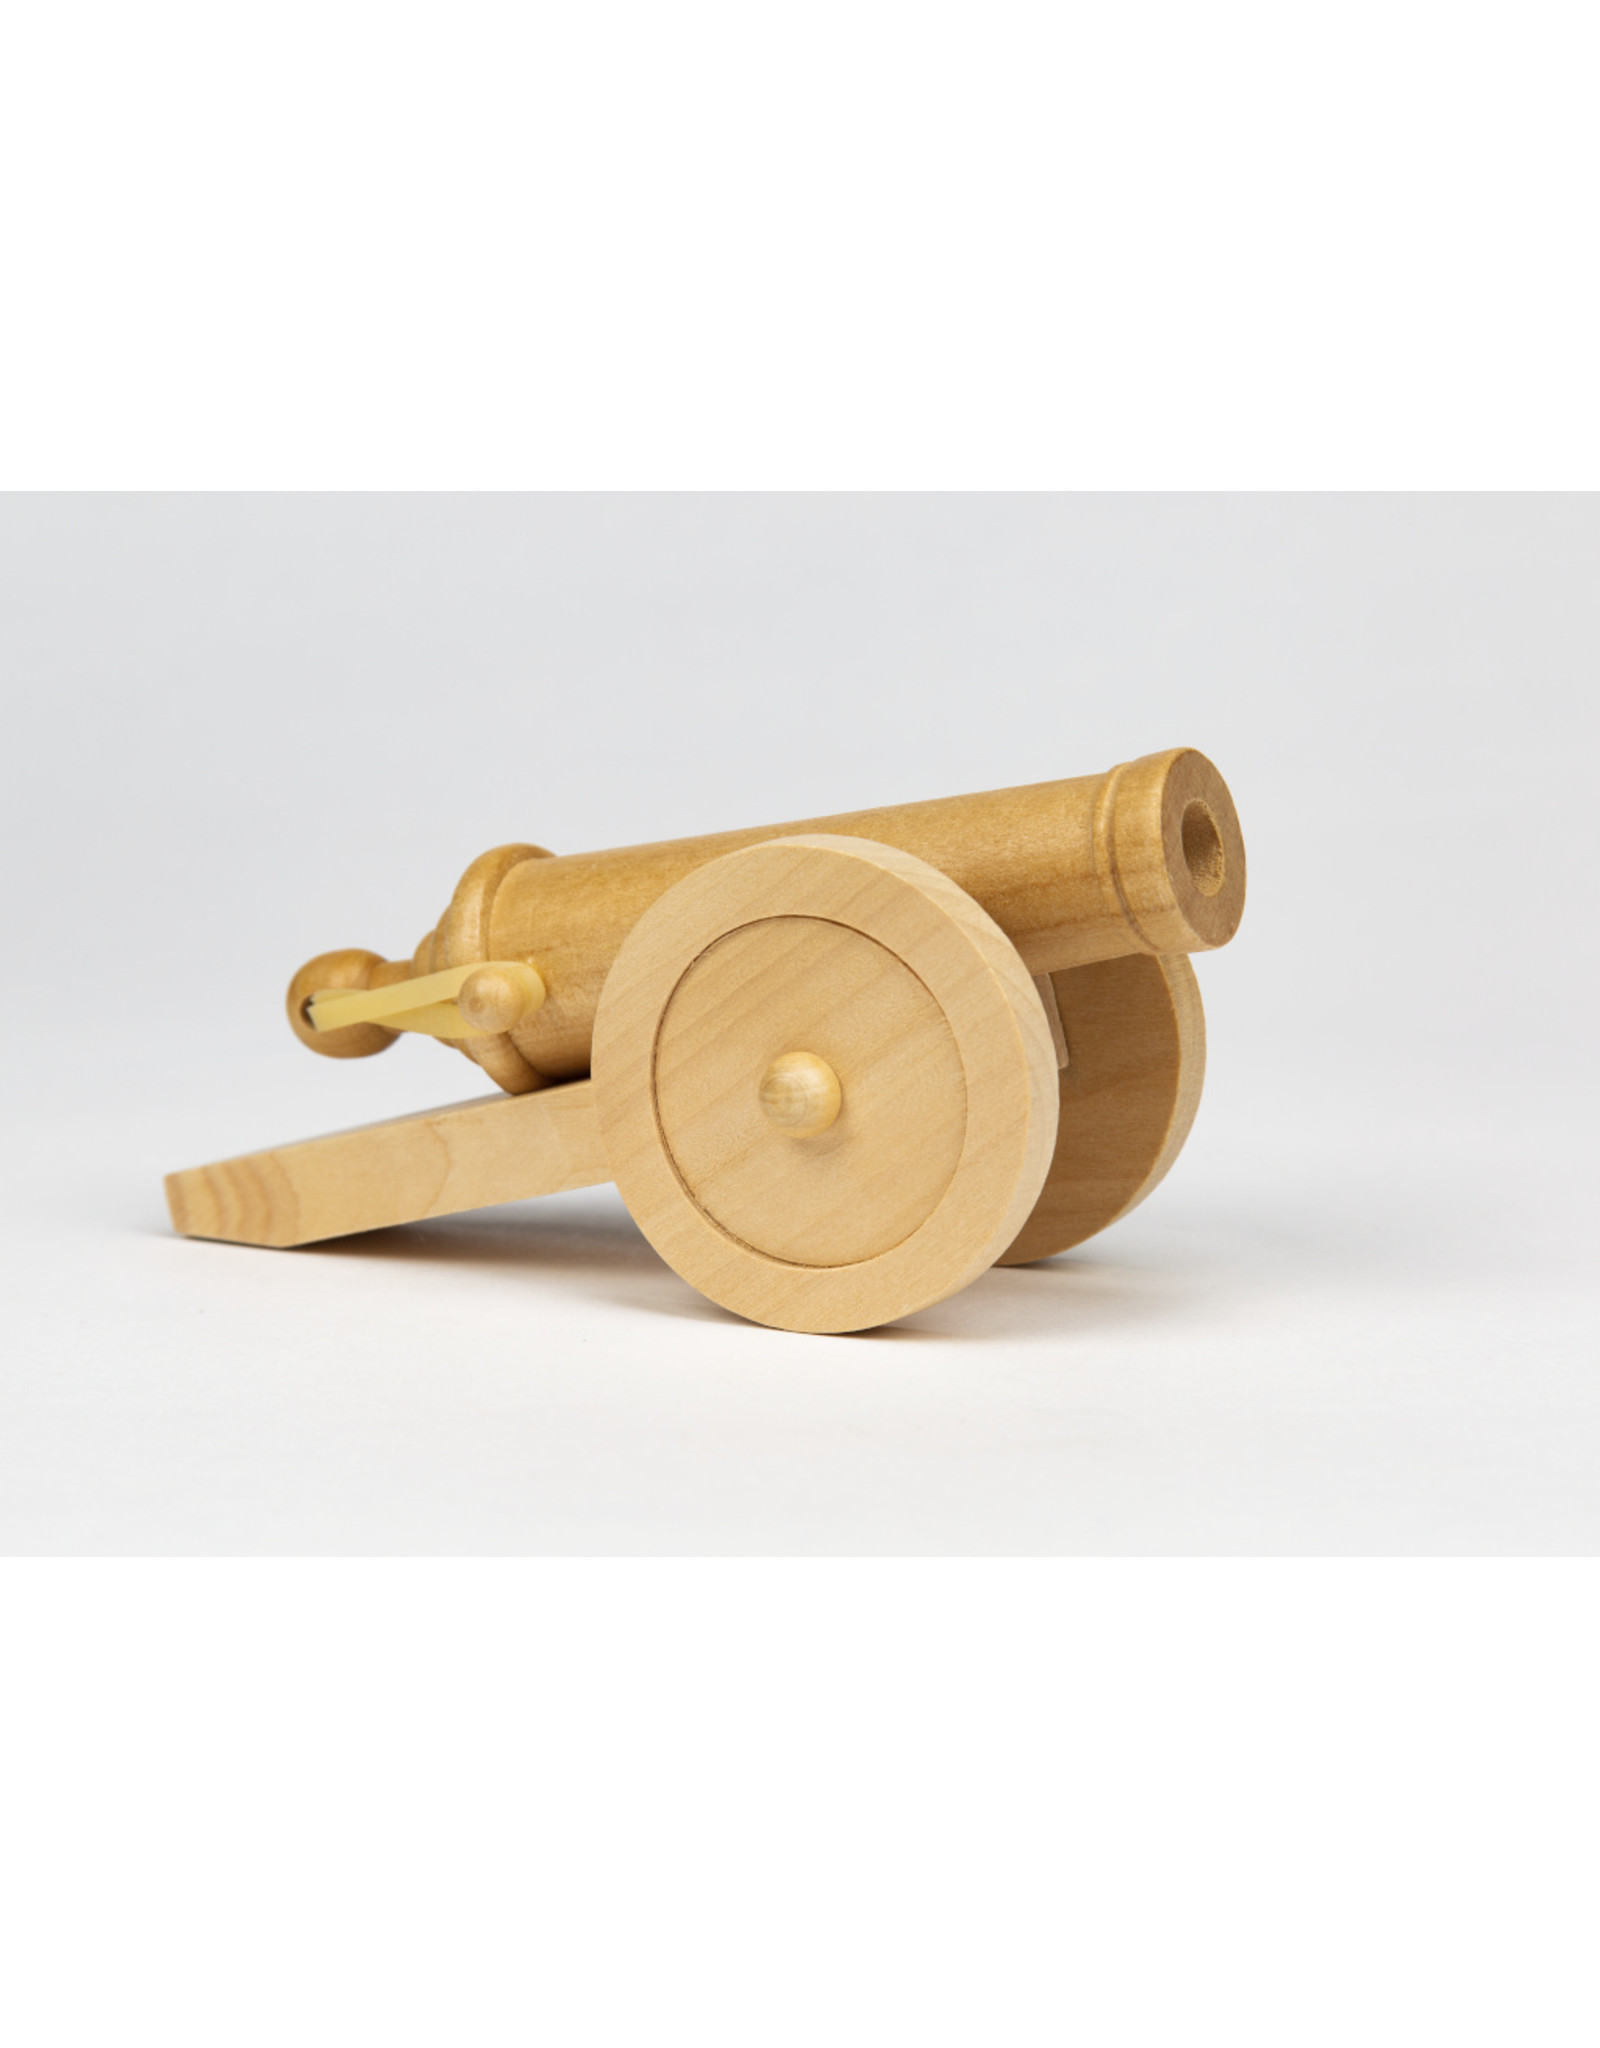 Toy Wooden Cannon